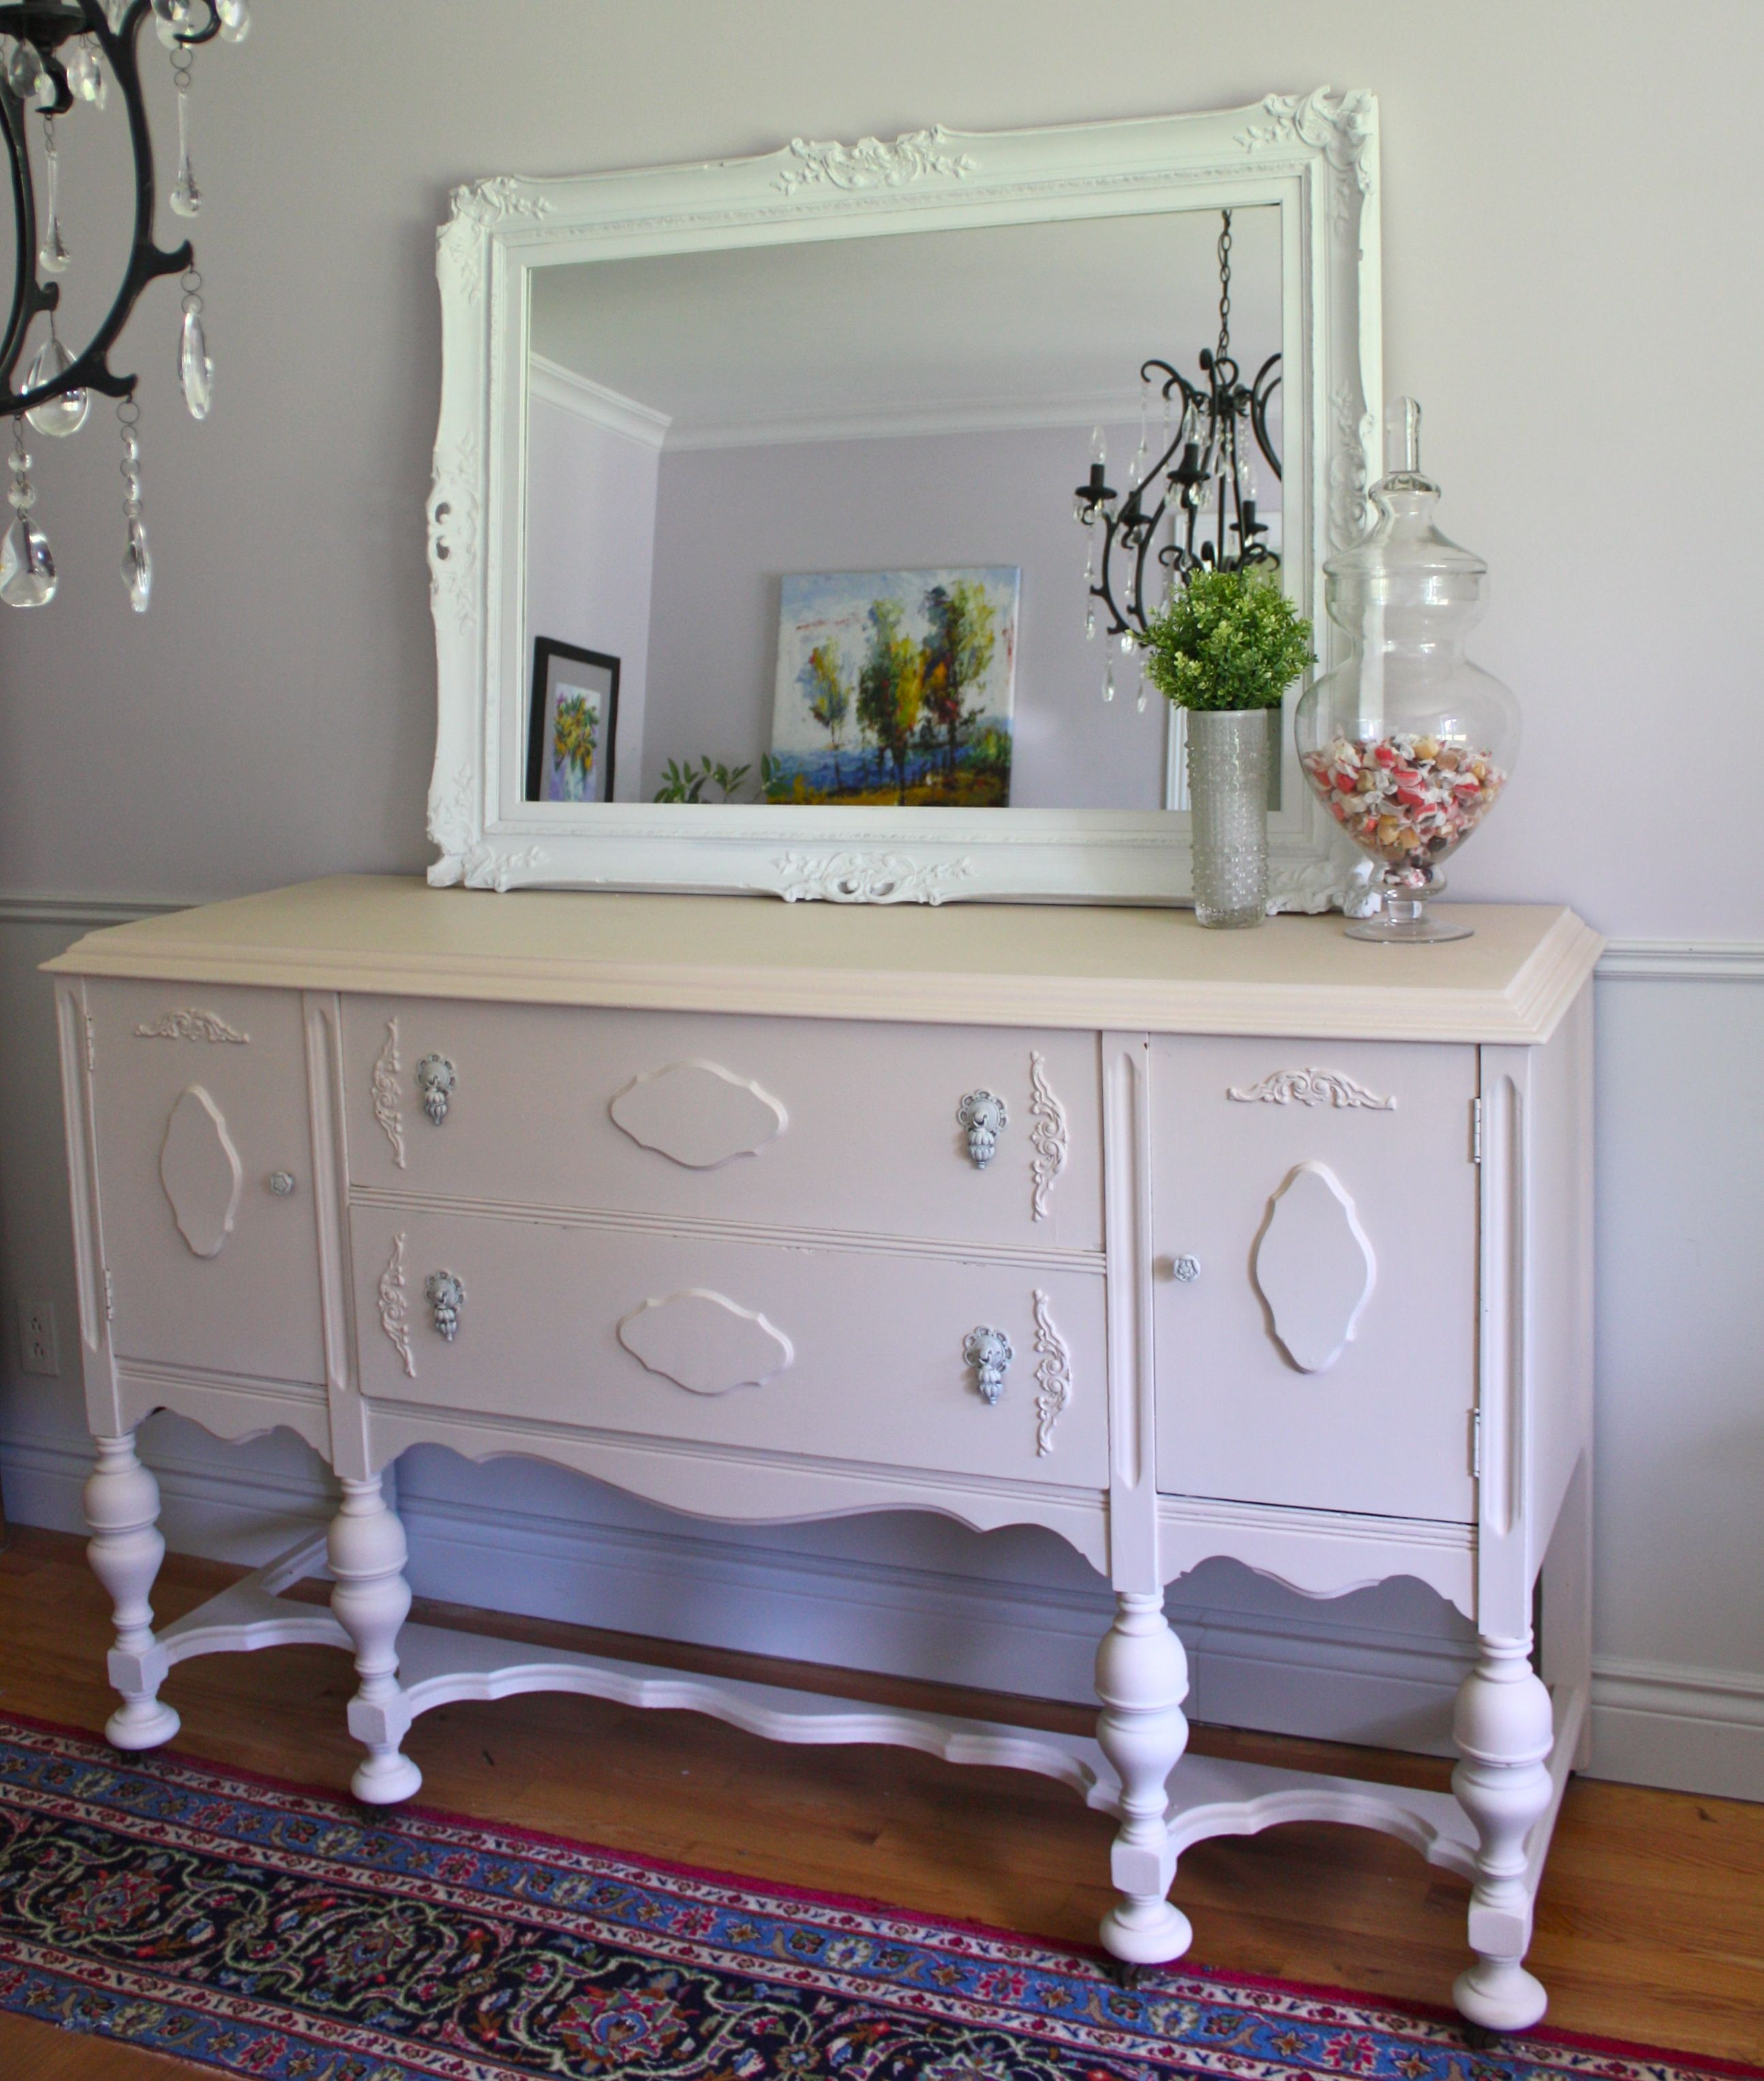 How to paint a vintage buffet home stories a to z - Antique Sideboard Buffet Painted Peach Chalk Paint The Painted Pocket